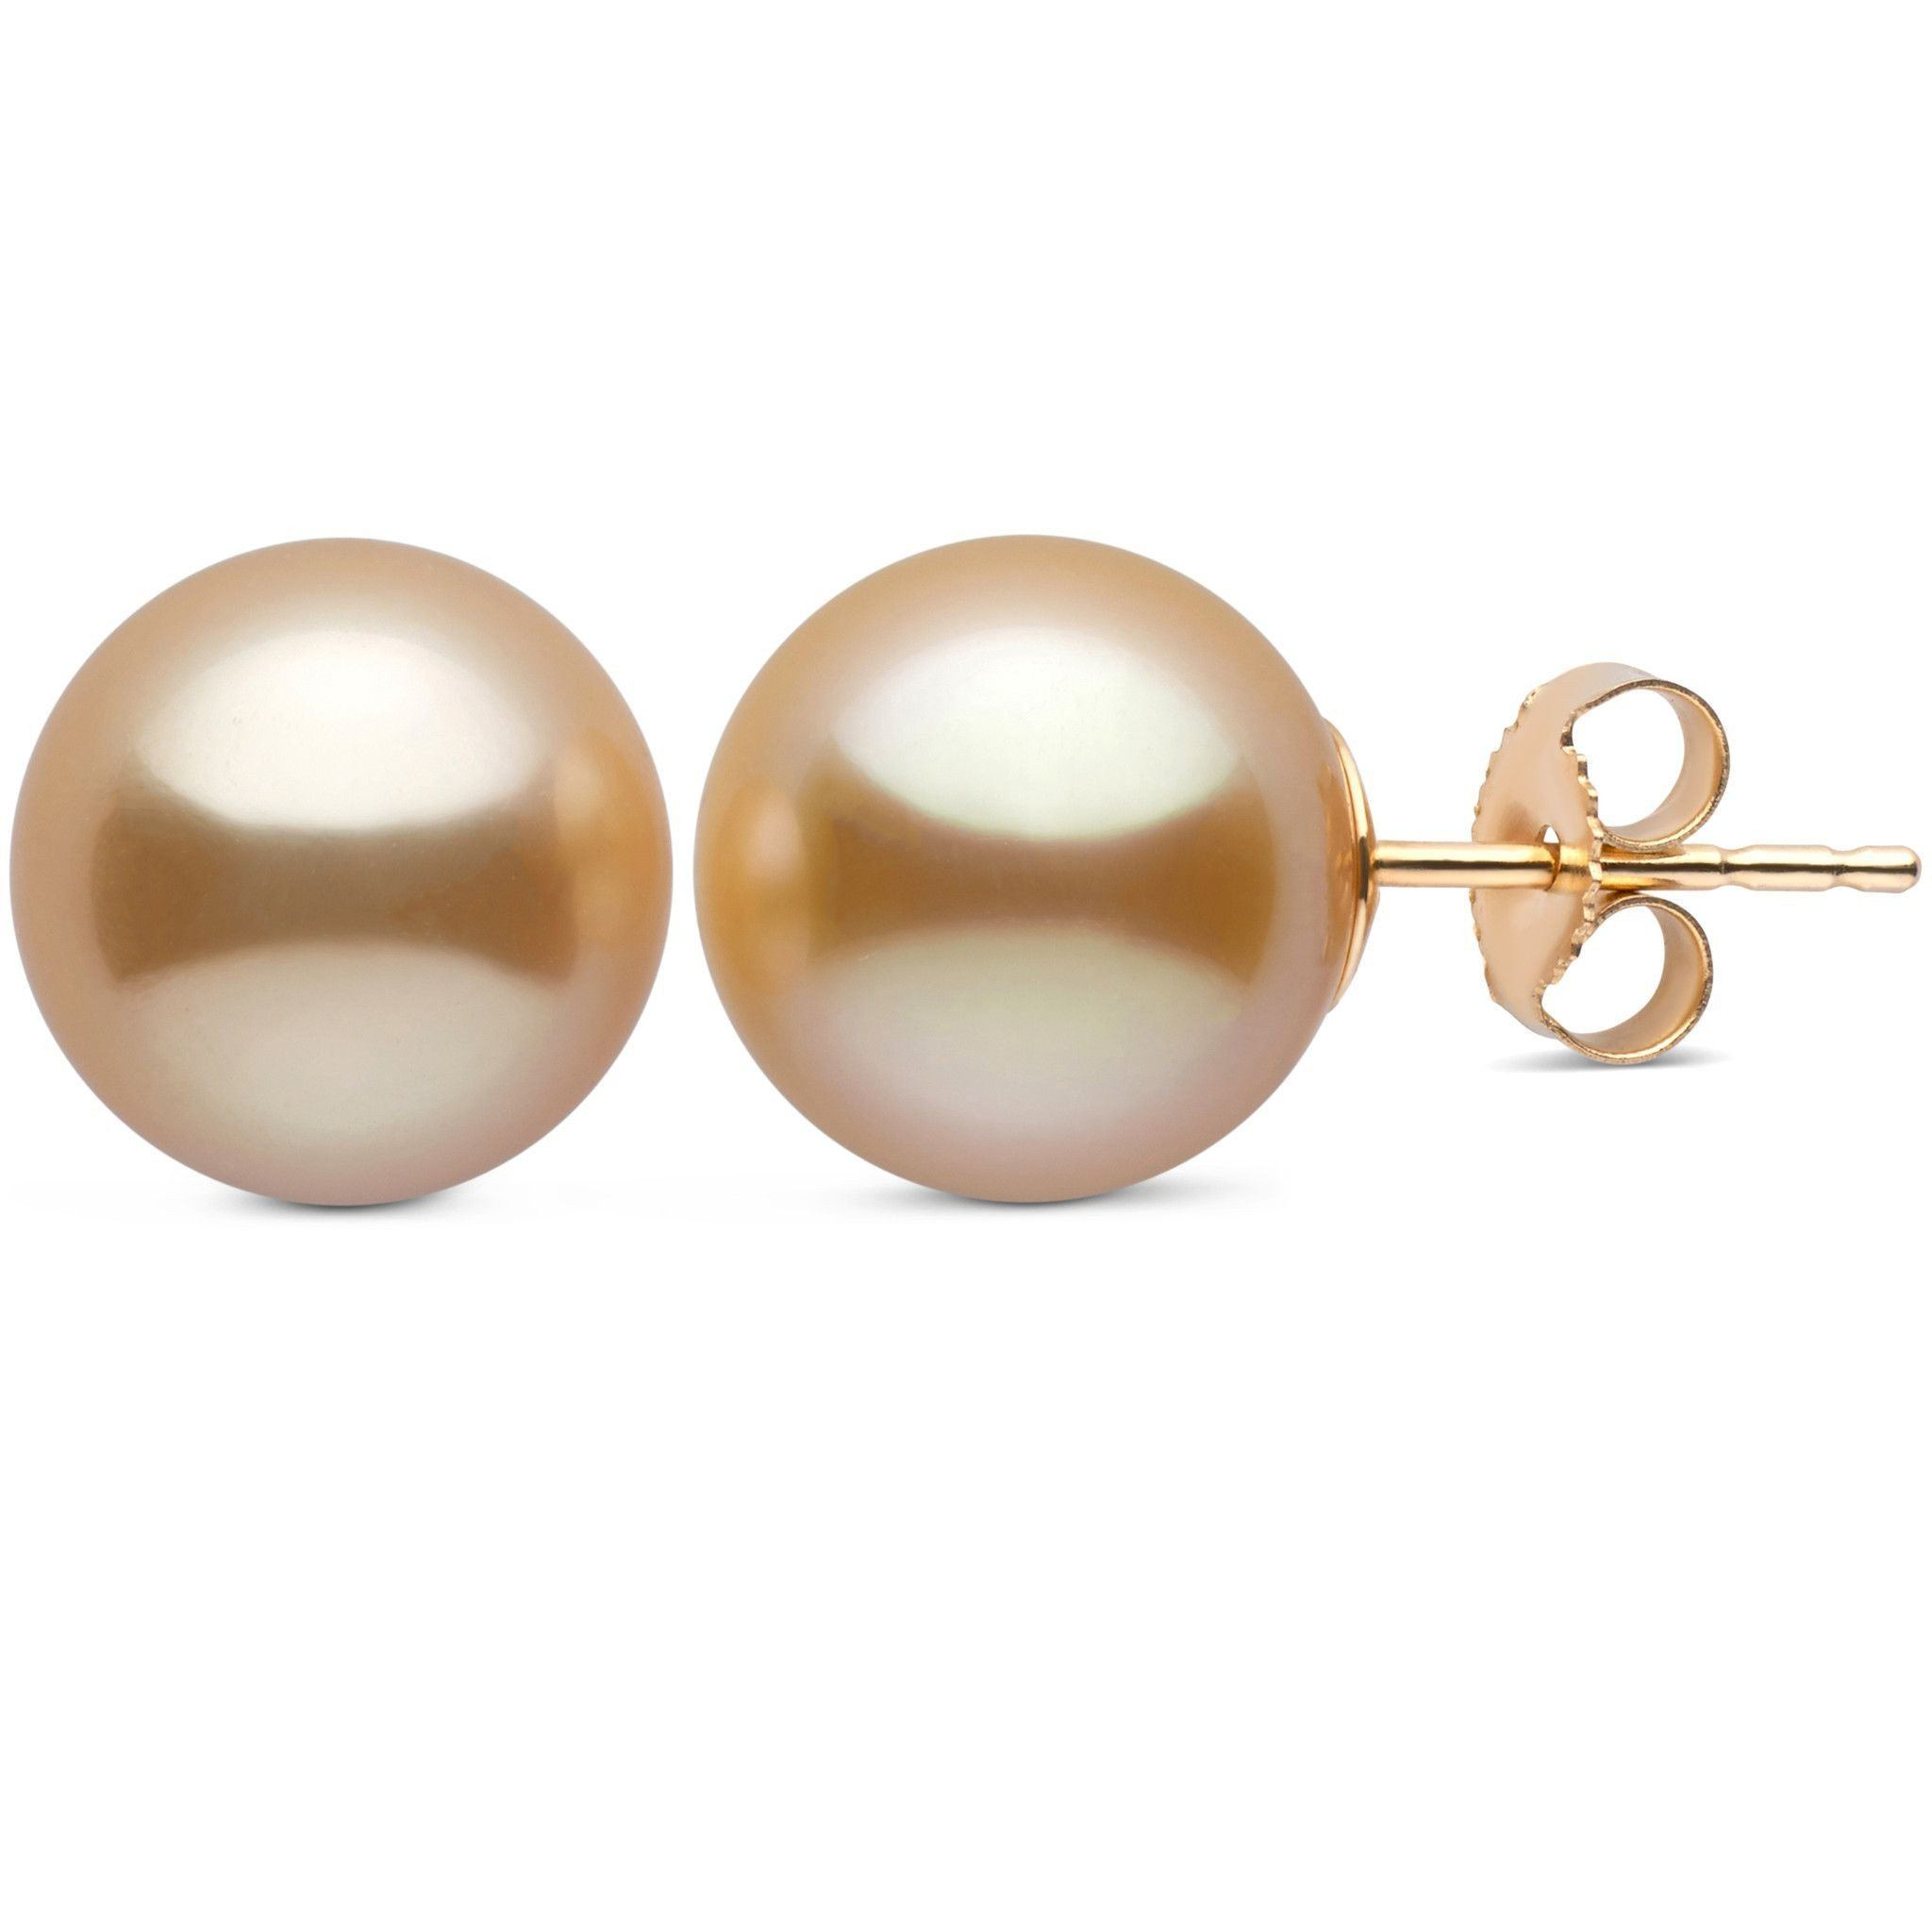 10.0-11.0 mm AAA Golden South Sea Pearl Stud Earrings